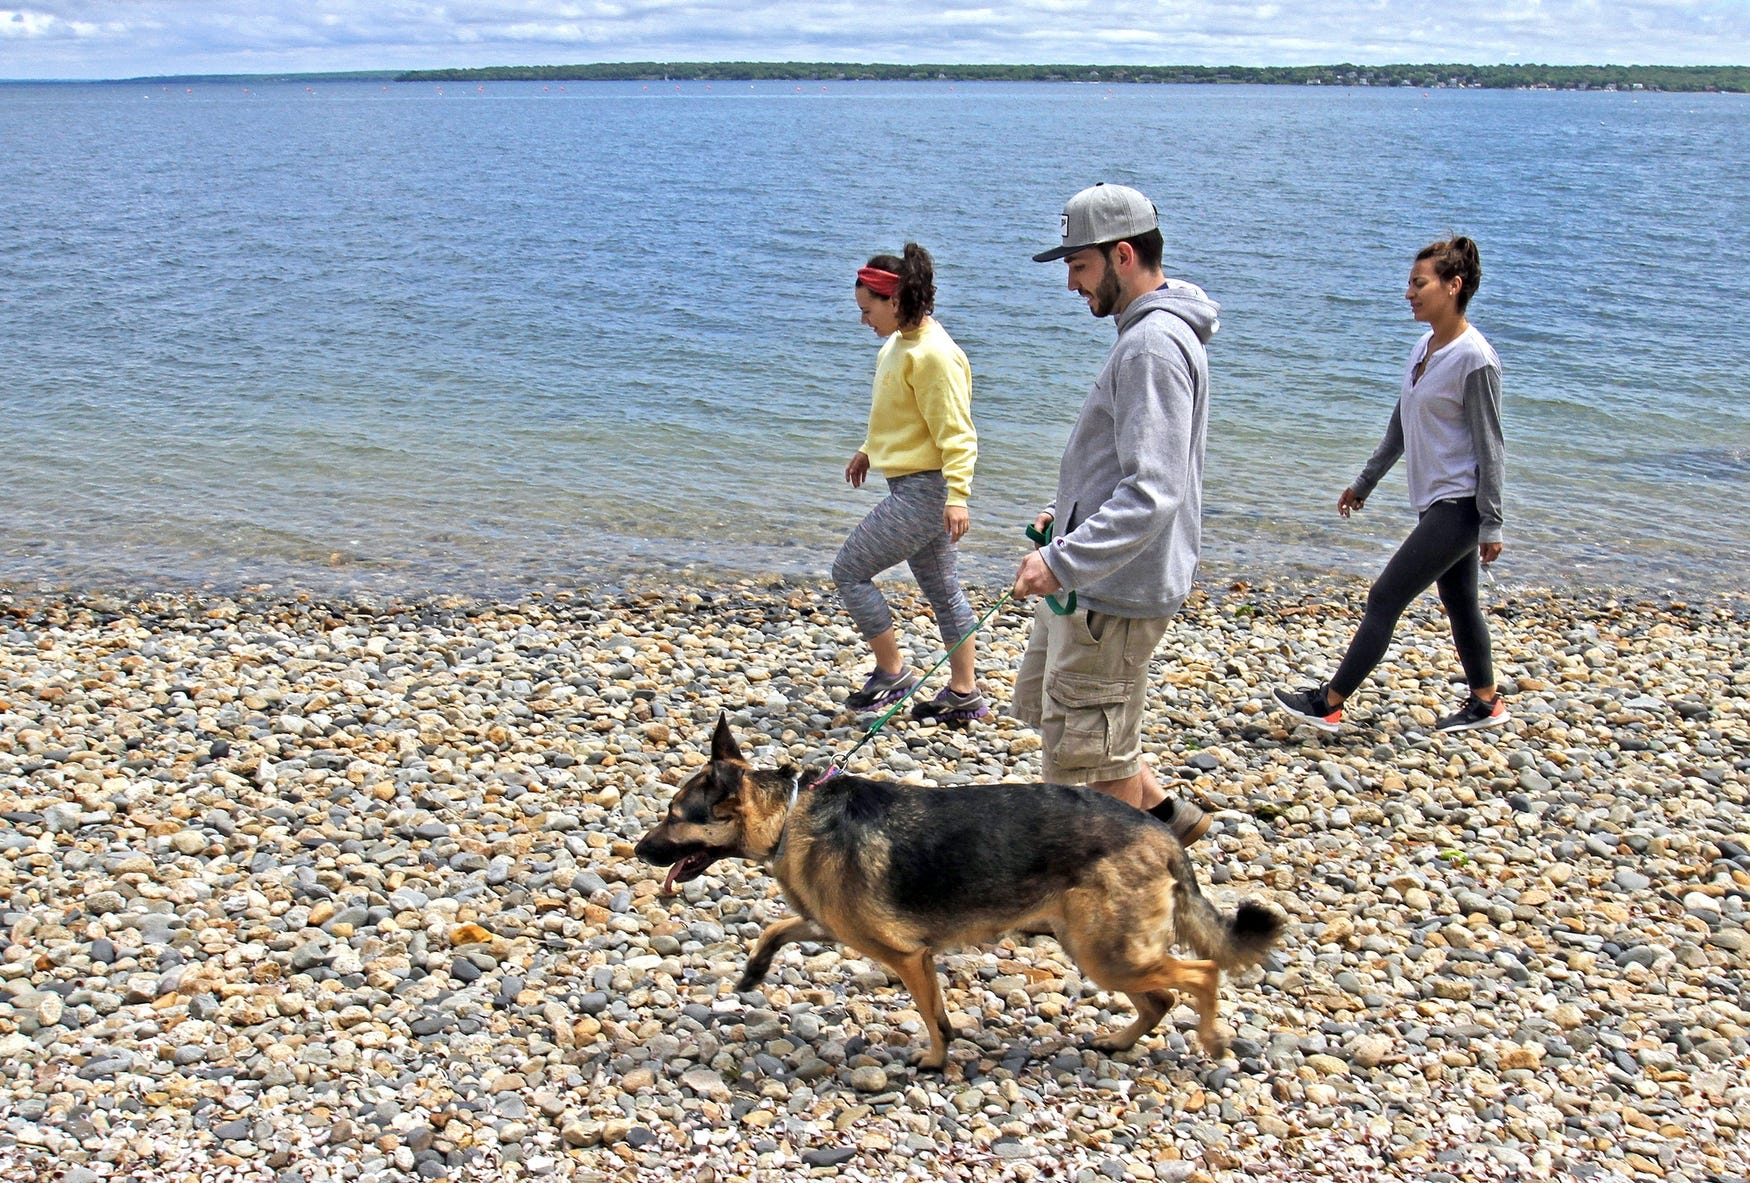 Walking along Rome Point at the John H. Chaffe Nature Preserve in North Kingstown.